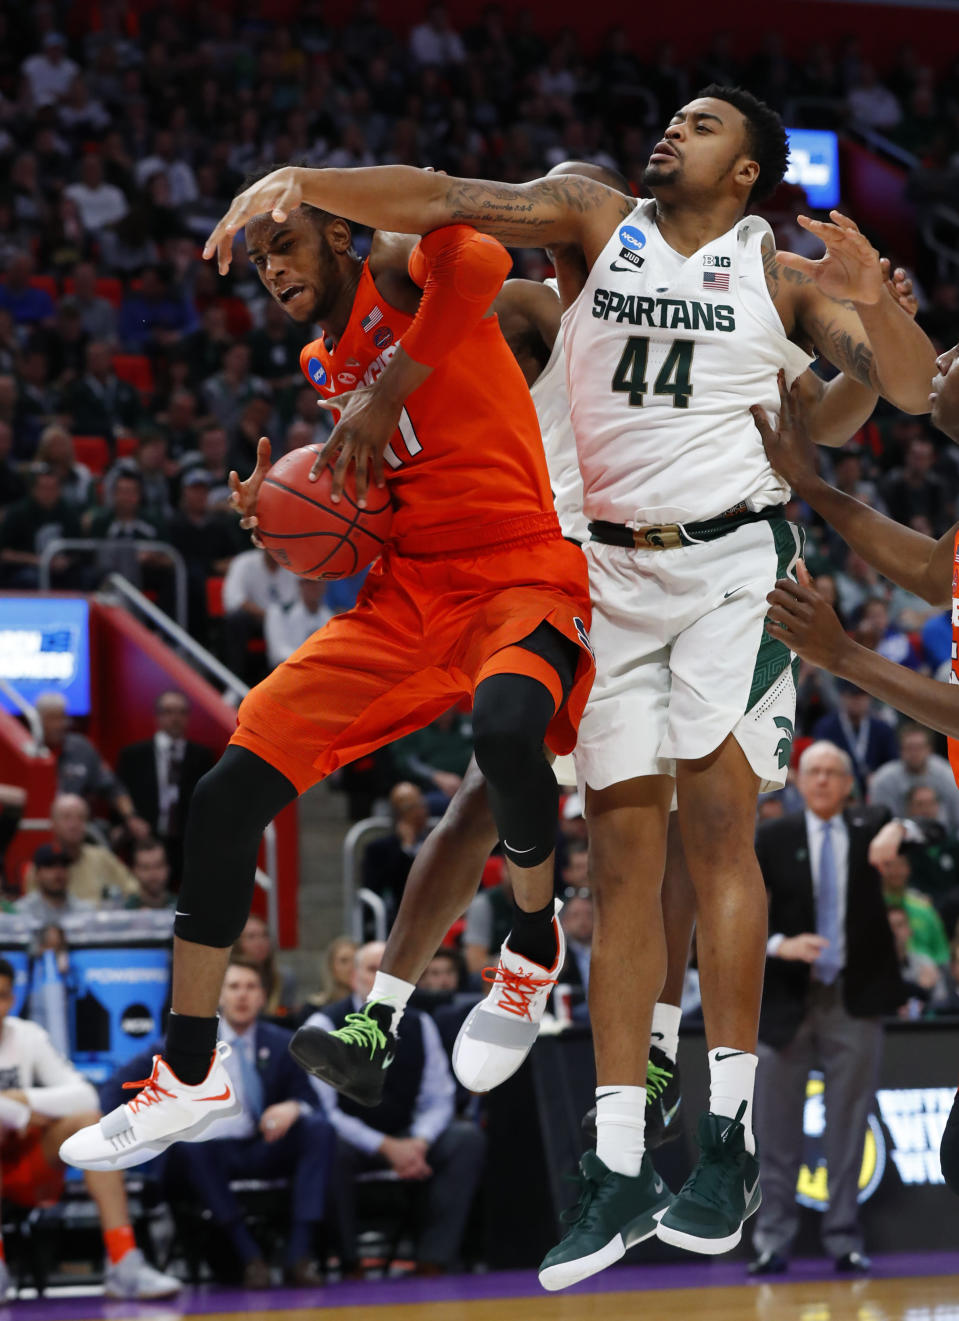 Syracuse forward Oshae Brissett (11) drives against Michigan State forward Nick Ward (44) during the second half of an NCAA men's college basketball tournament second-round game in Detroit, Sunday, March 18, 2018. (AP Photo/Paul Sancya)